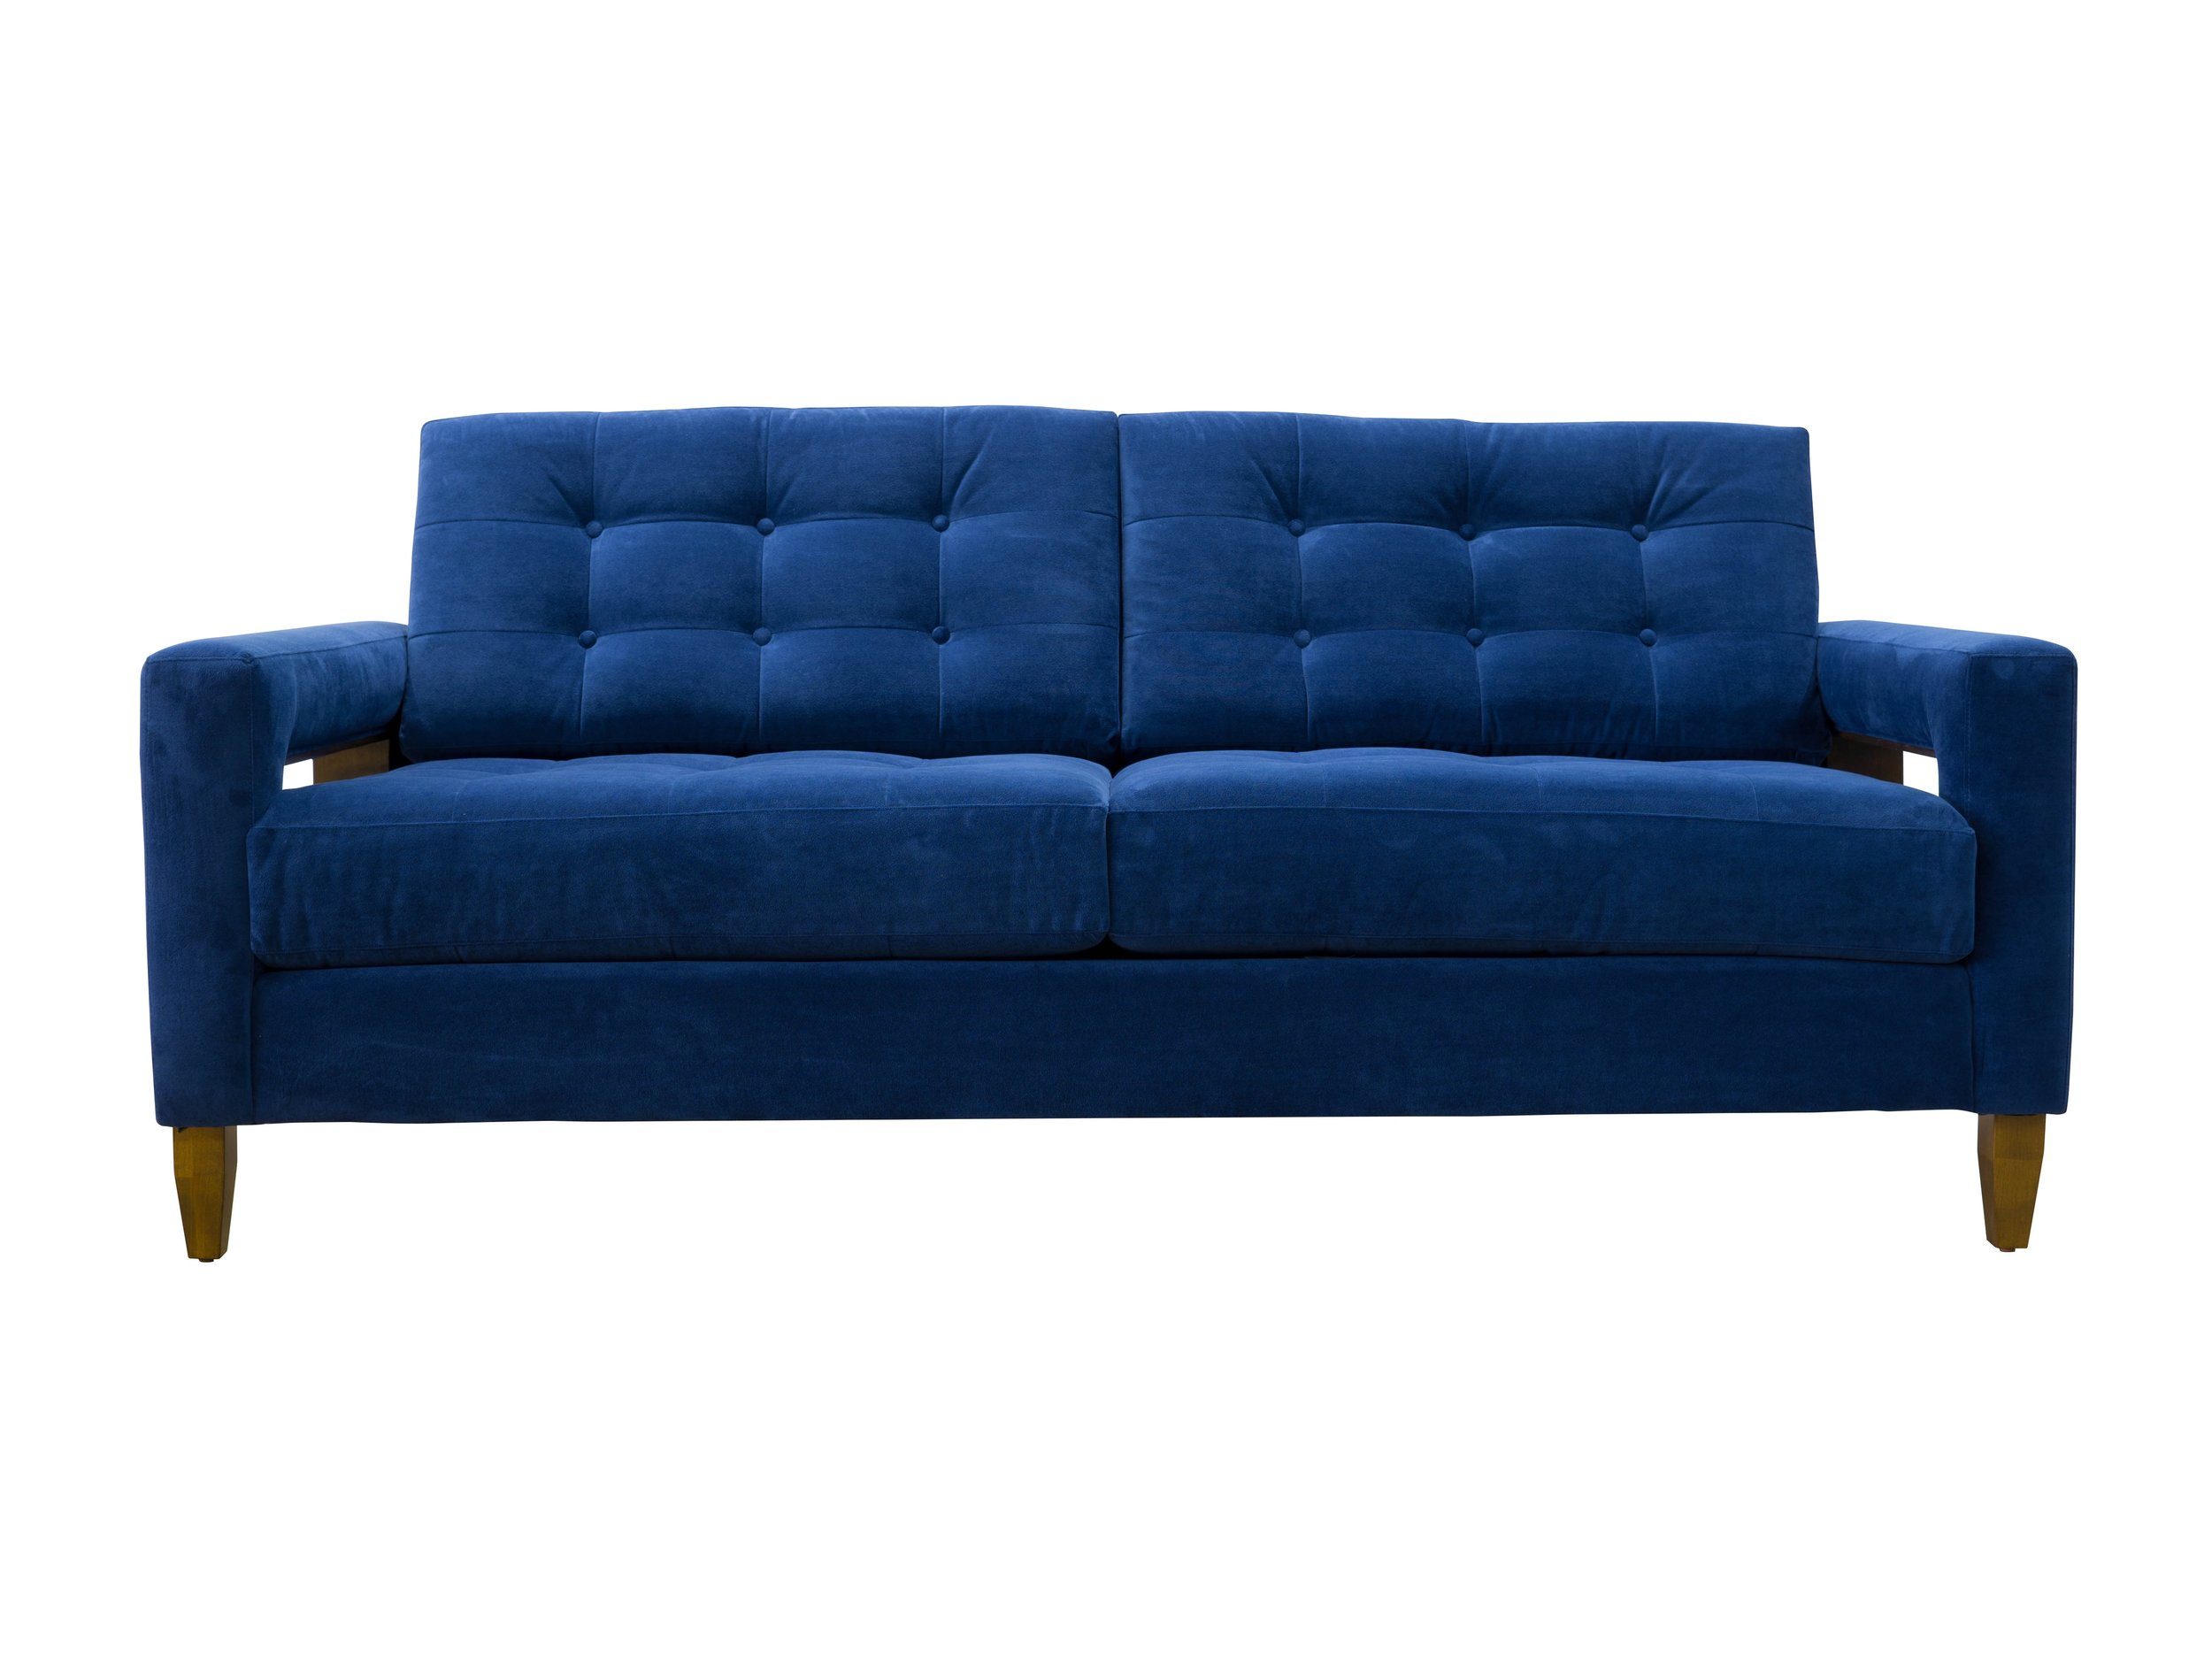 coventry-sofa-front.jpg